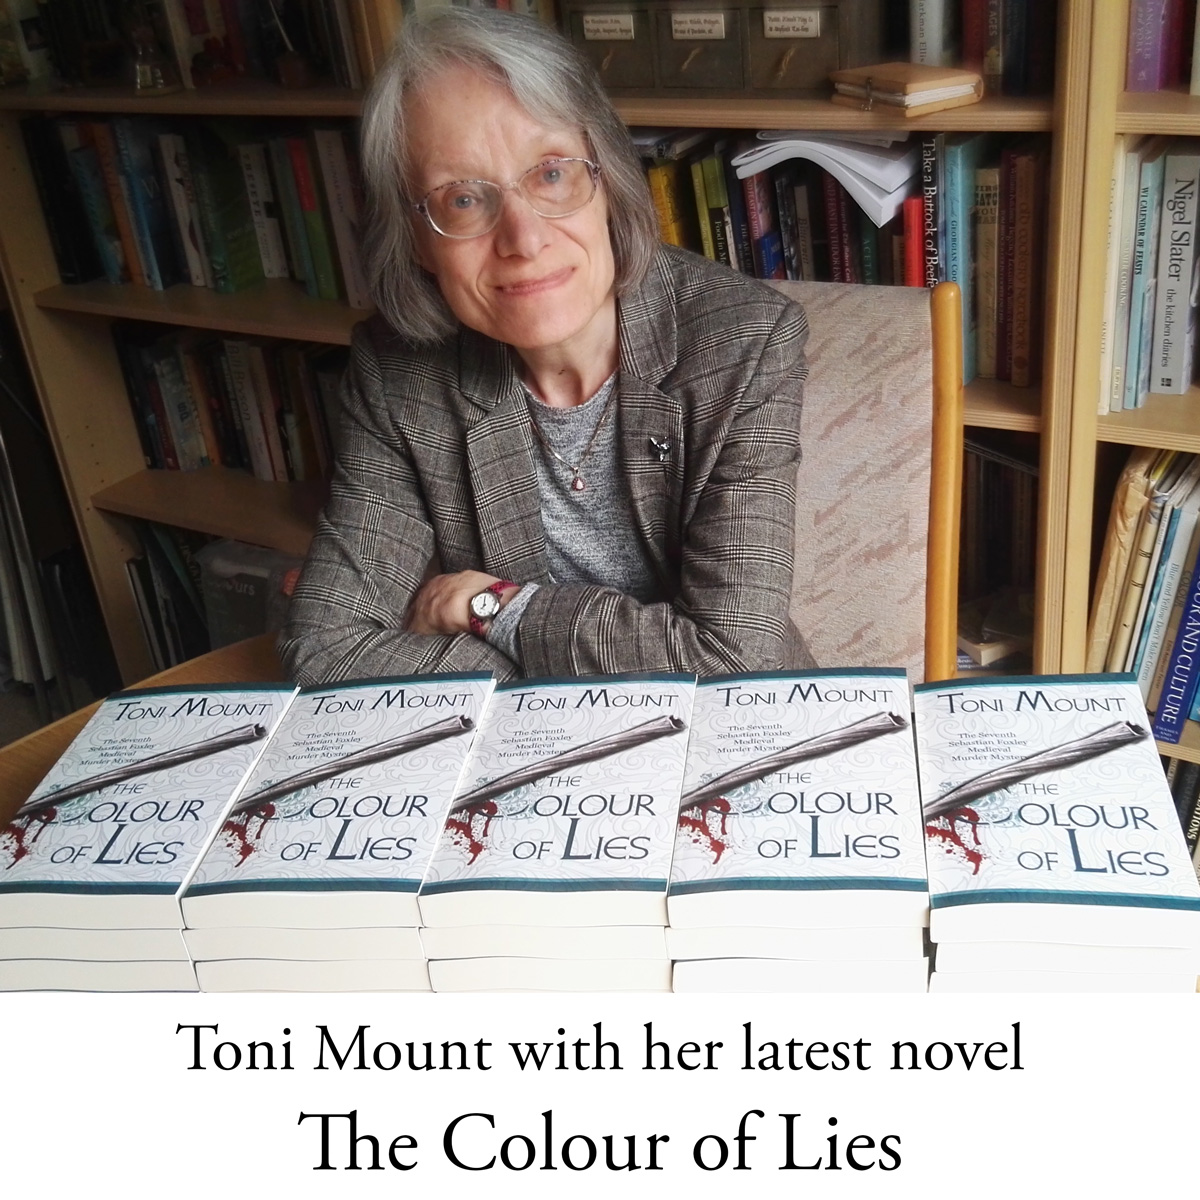 Toni Mount and The Colour of Lies